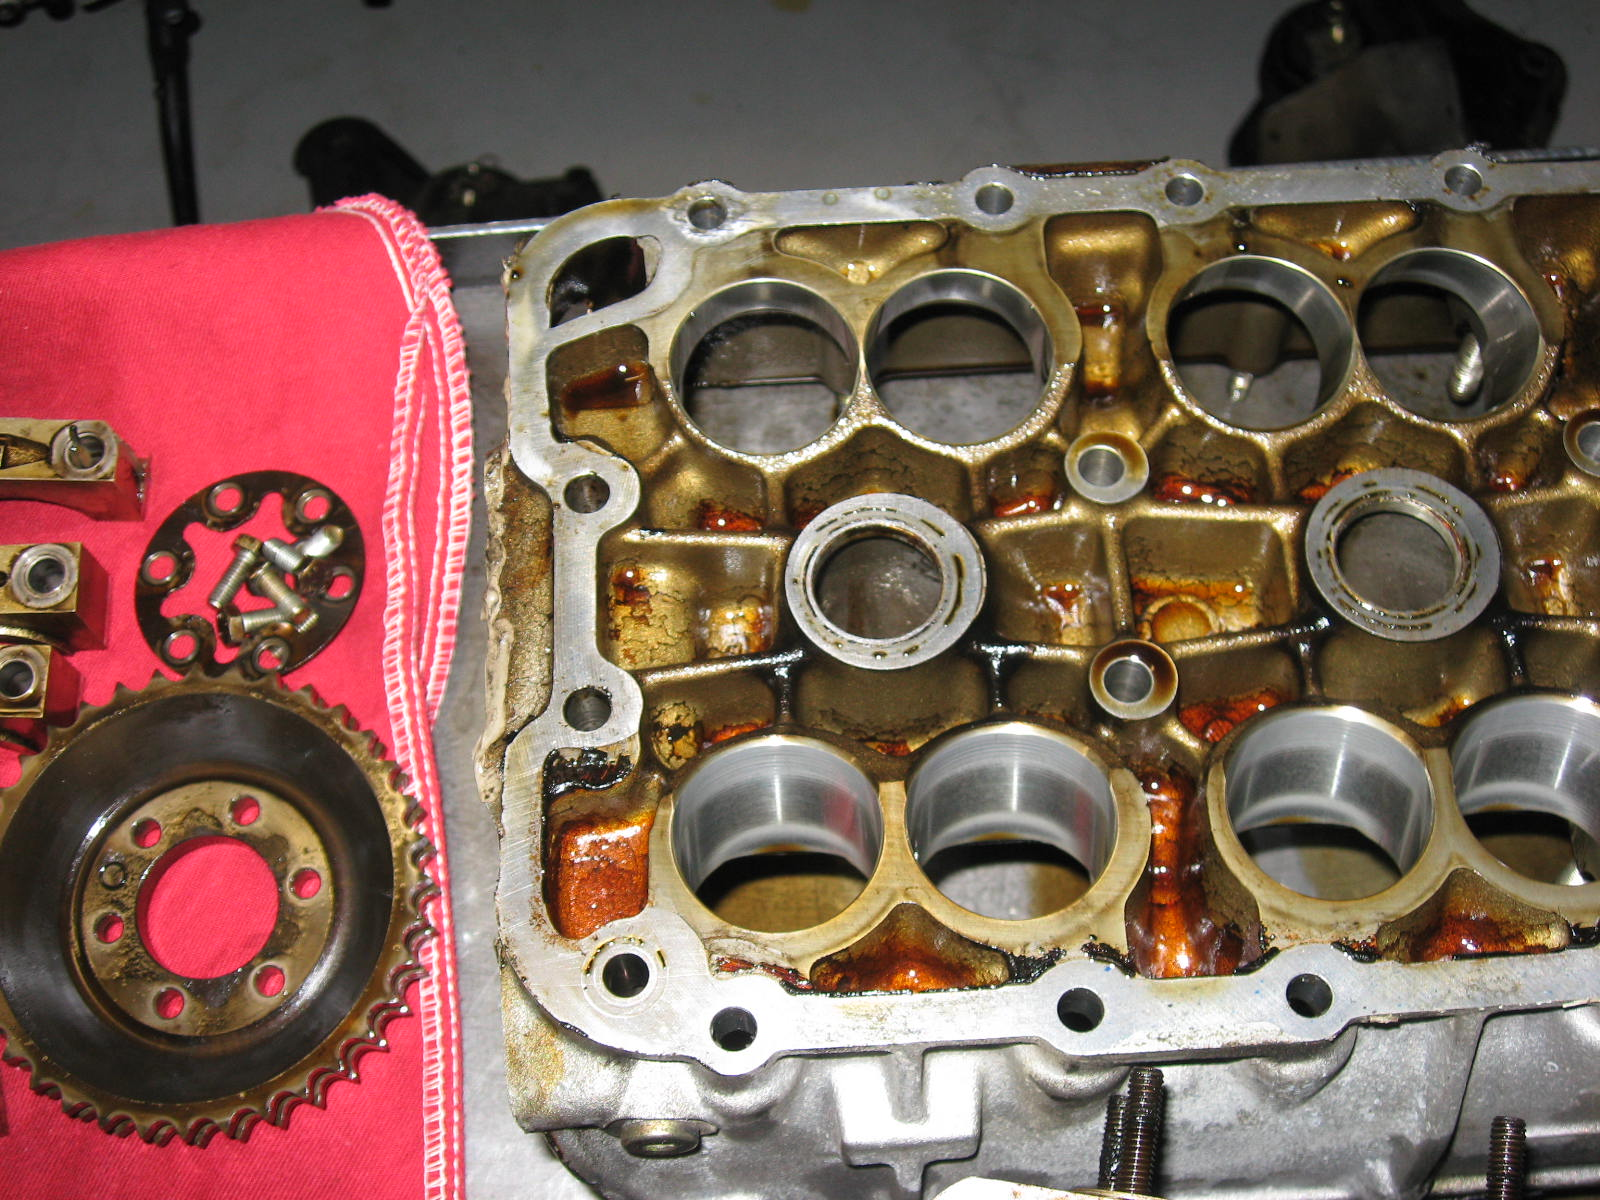 91 M5 Engine Comments-picture-042.jpg